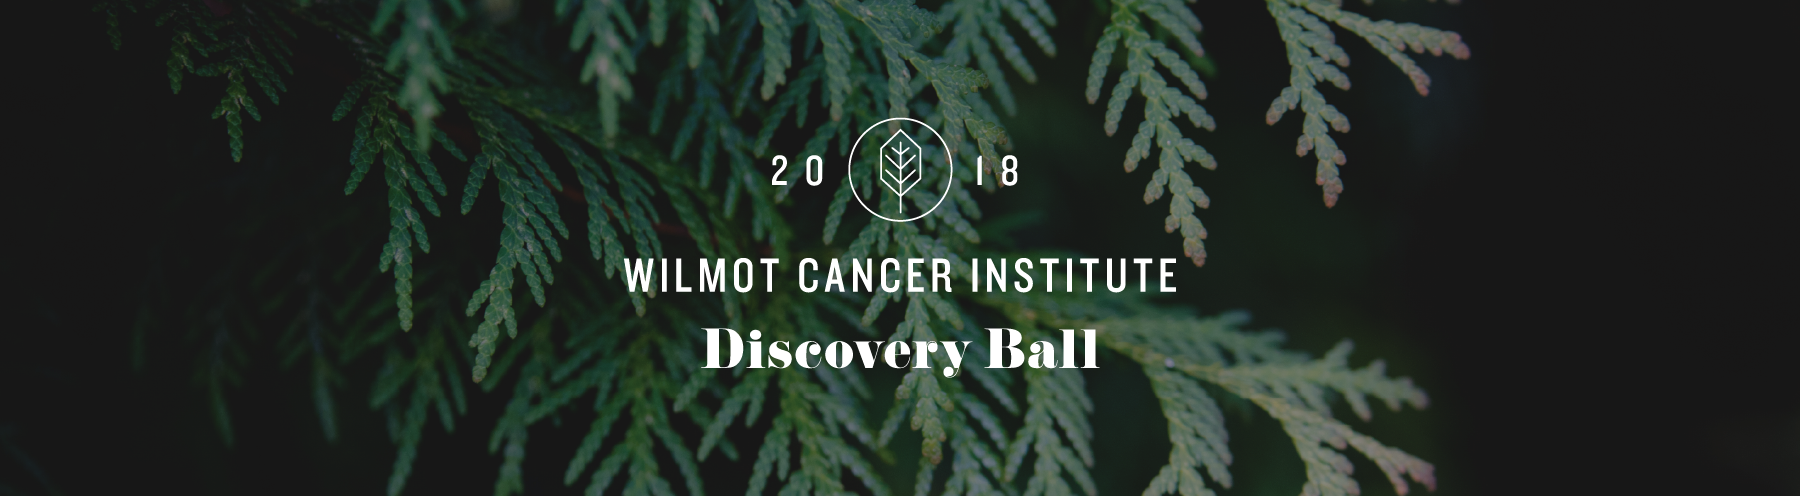 2018 Wilmot Cancer Institute Discovery Ball